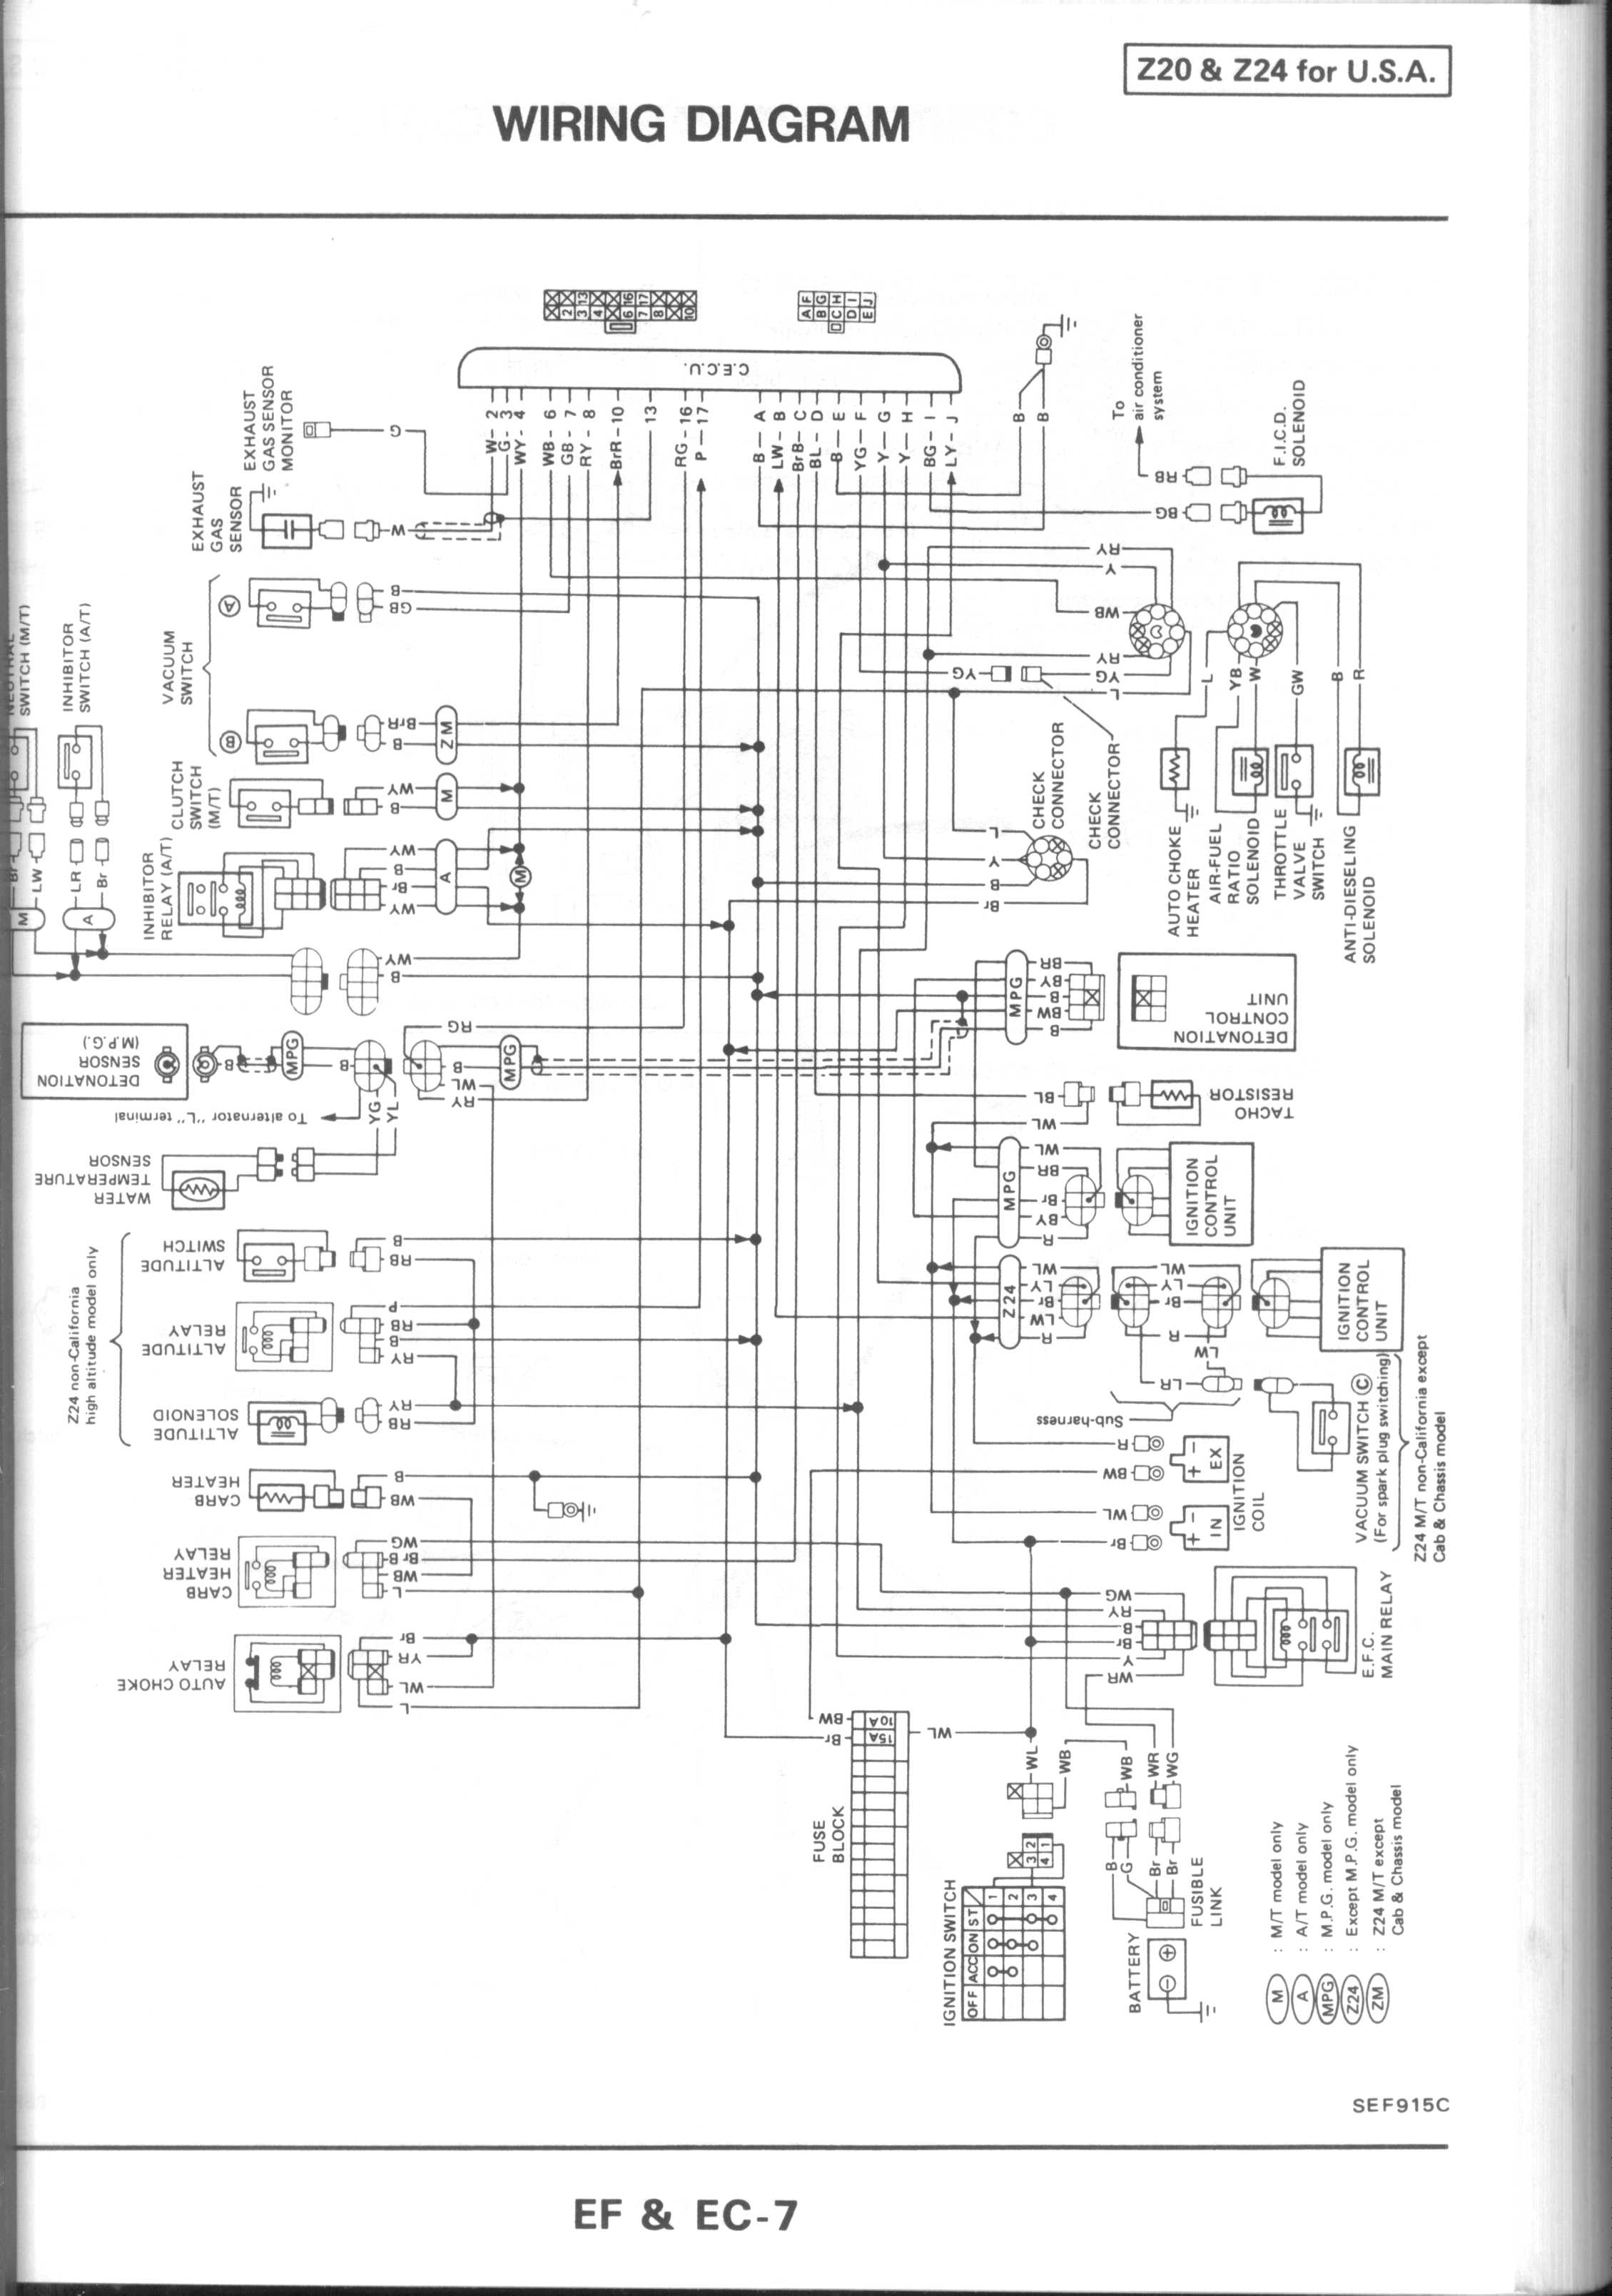 86 Nissan 300zx Wiring Diagram Great Installation Of Wire 1988 1986 Harness Data Rh 13 6 8 Mercedes Aktion Tesmer